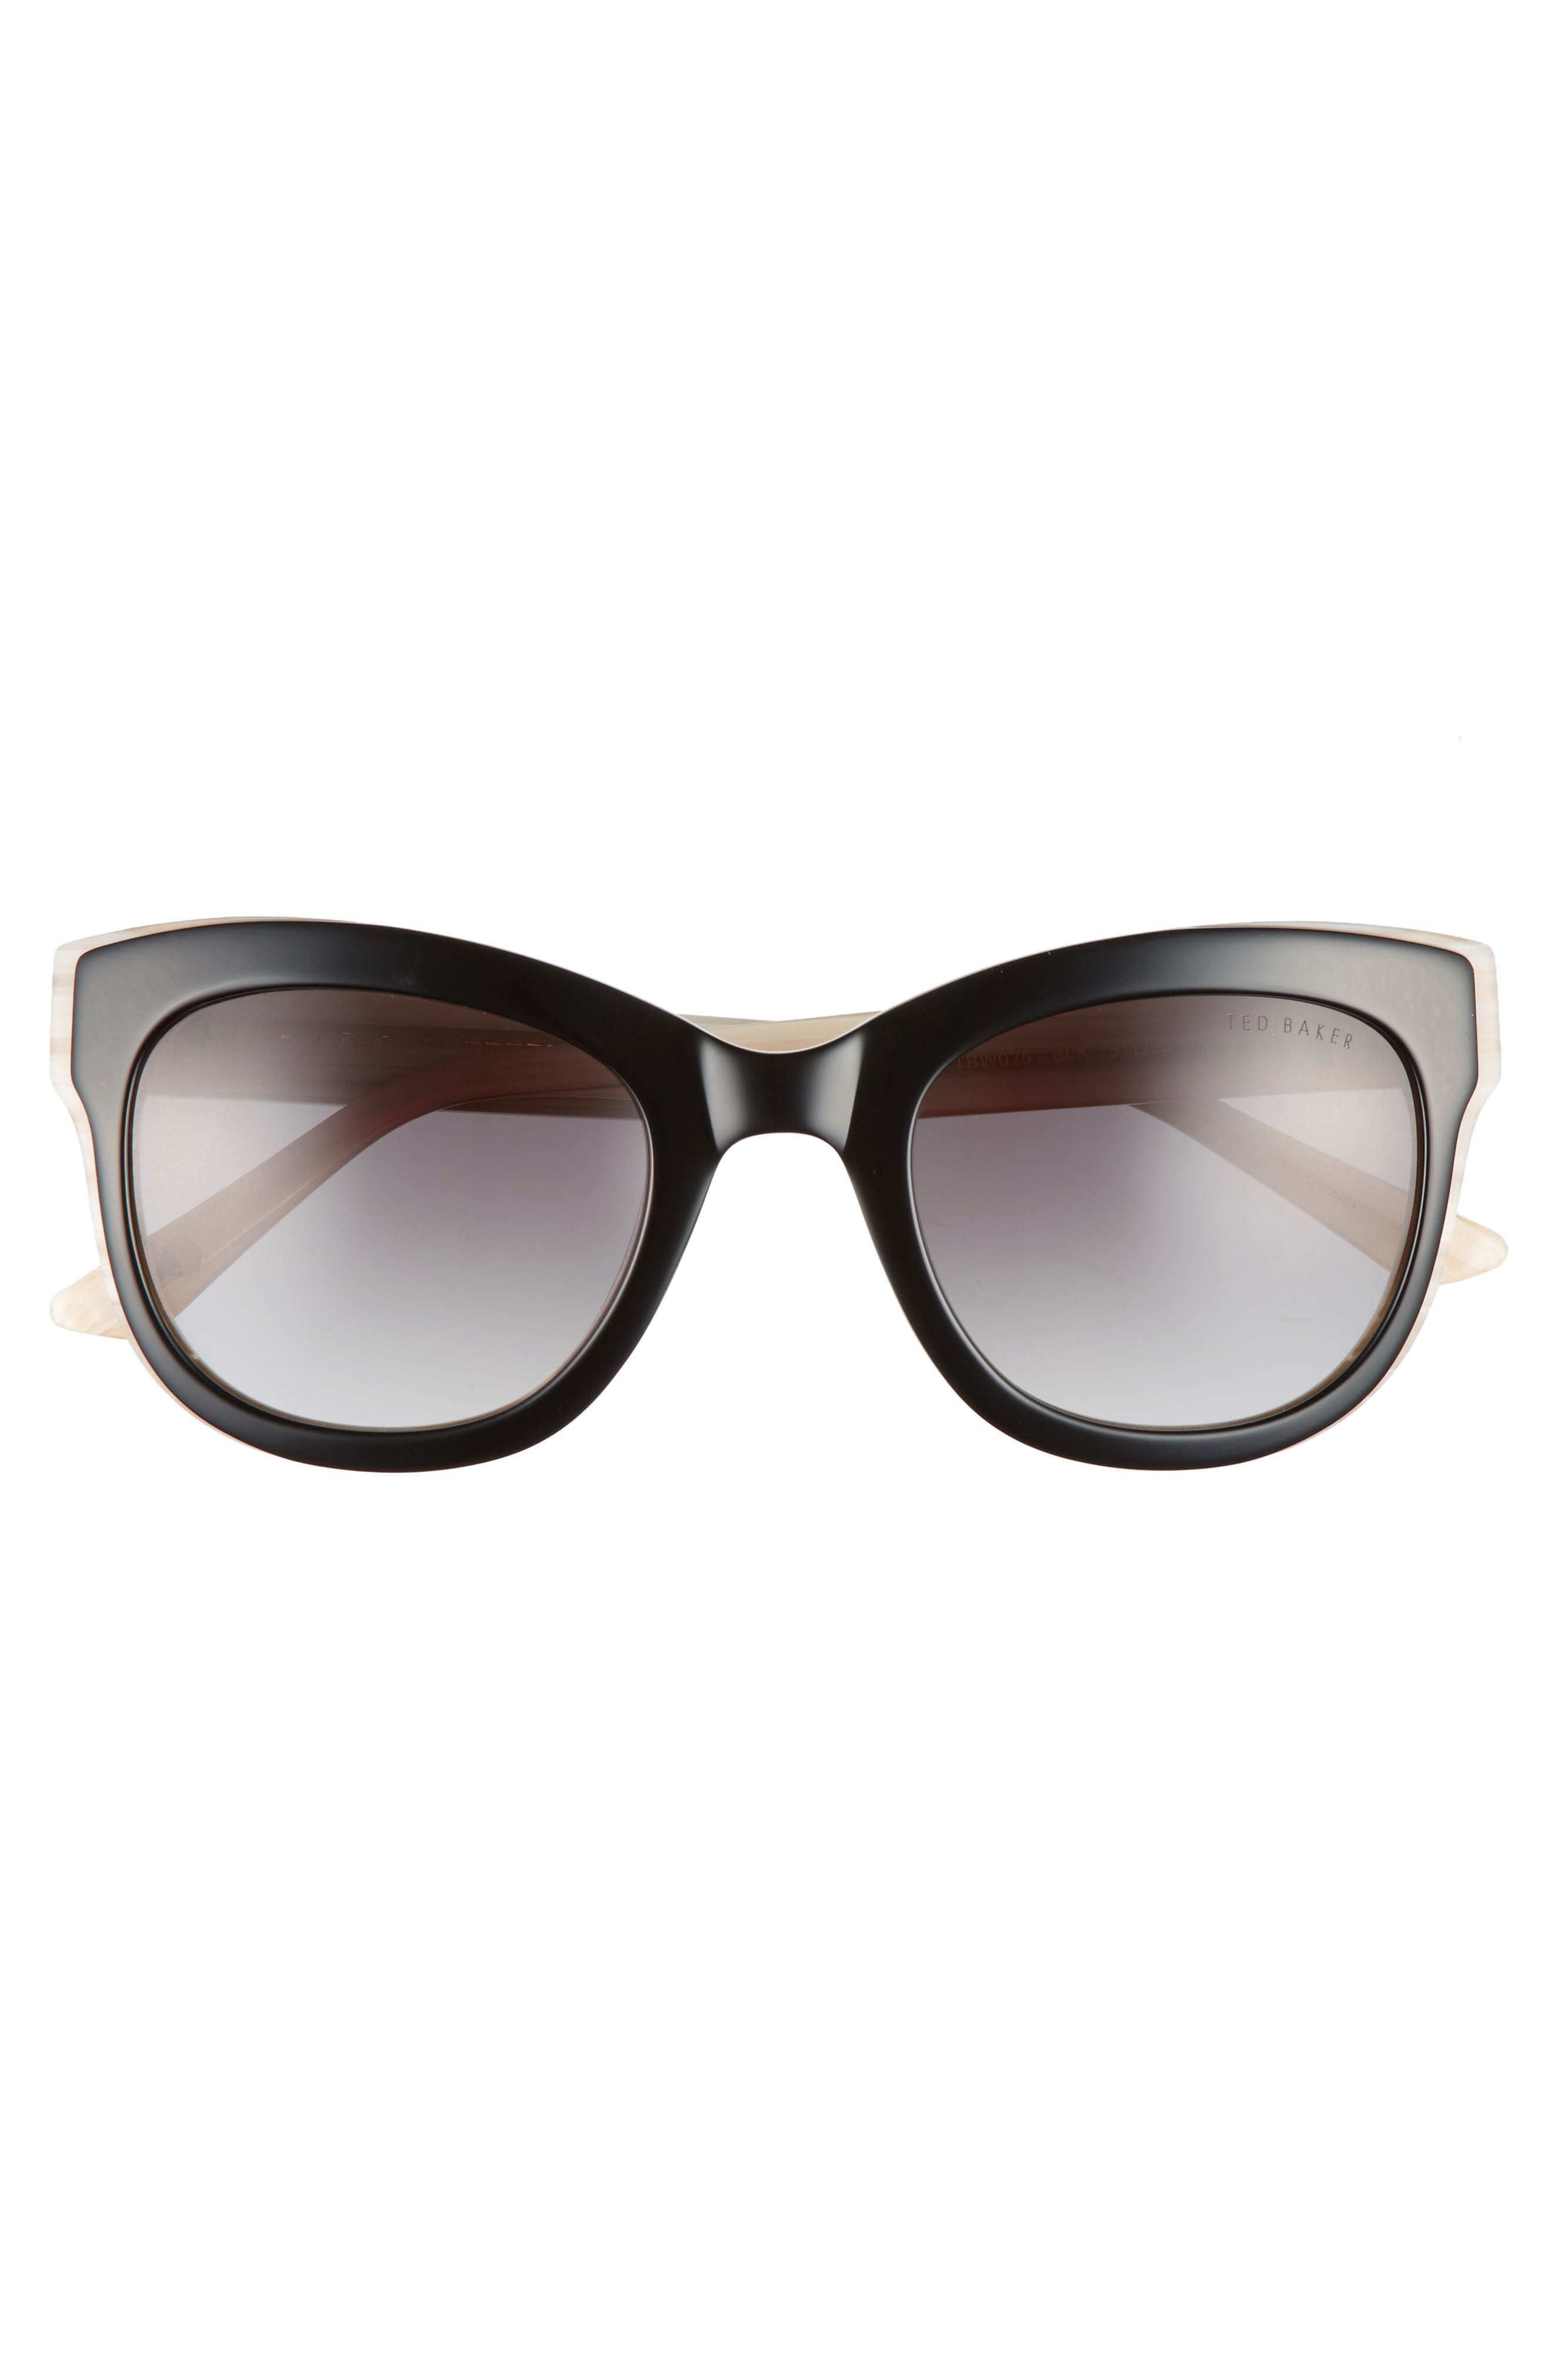 51mm Square Cat Eye Sunglasses,                             Alternate thumbnail 3, color,                             Black